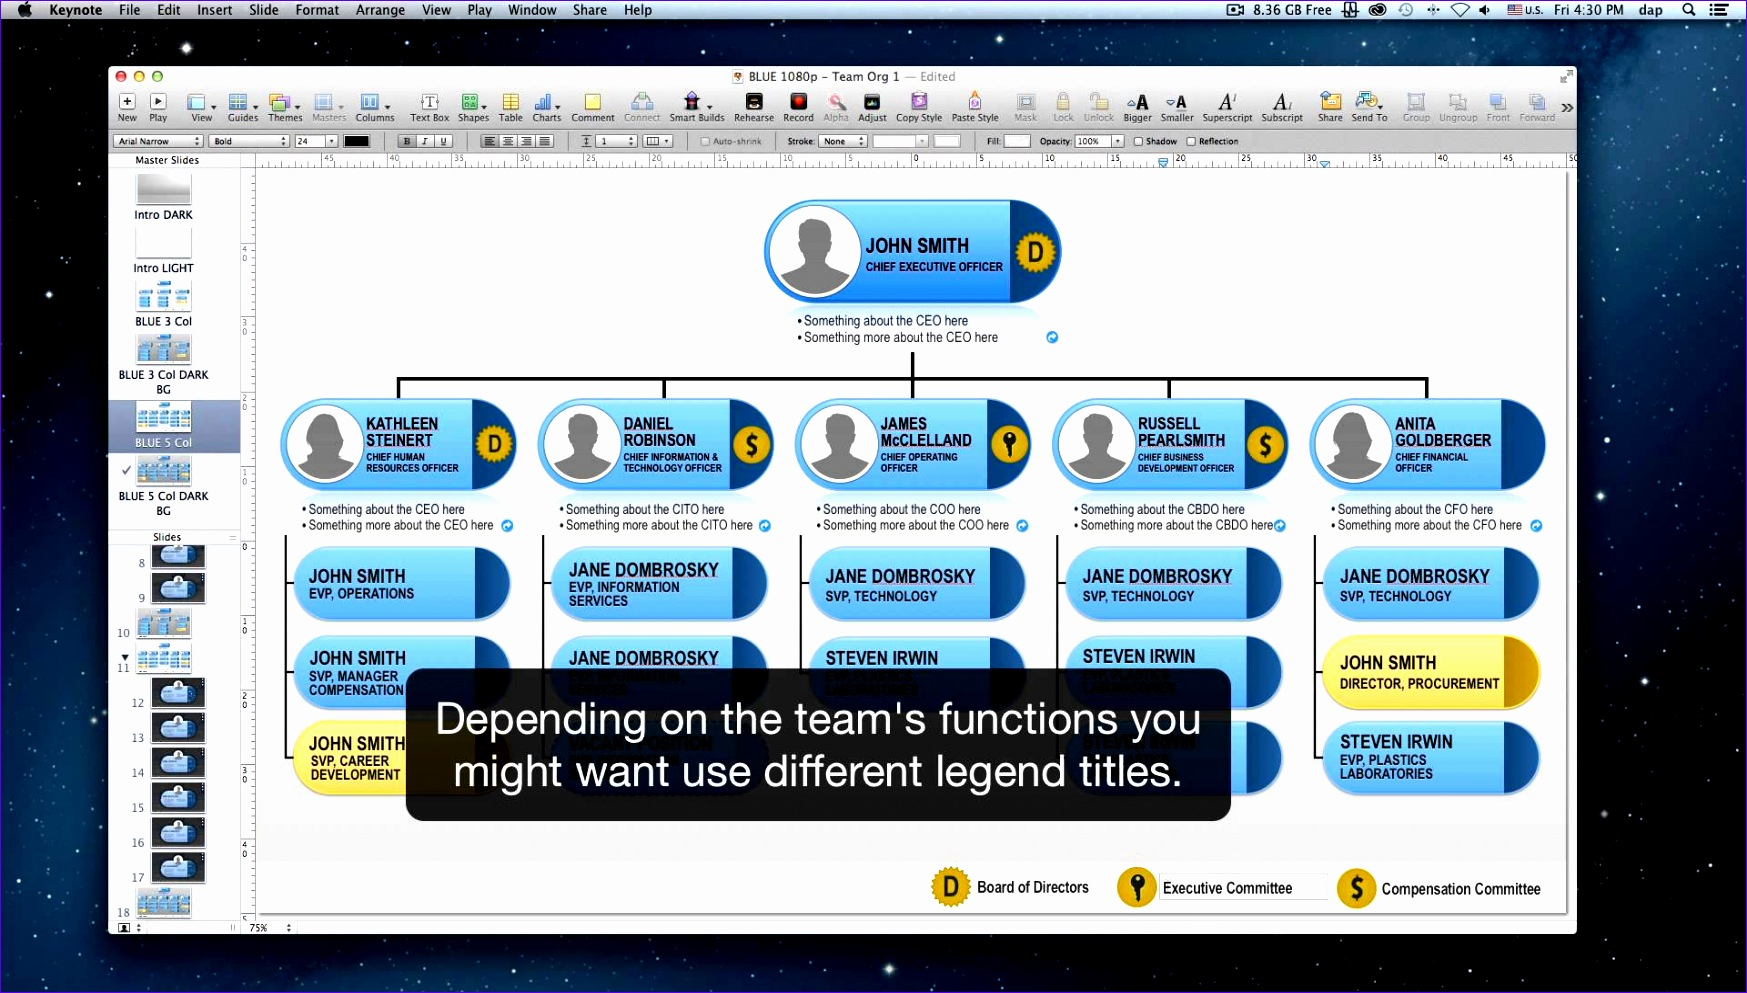 12 Organization Chart Template Excel 2010 ExcelTemplates ExcelTemplates